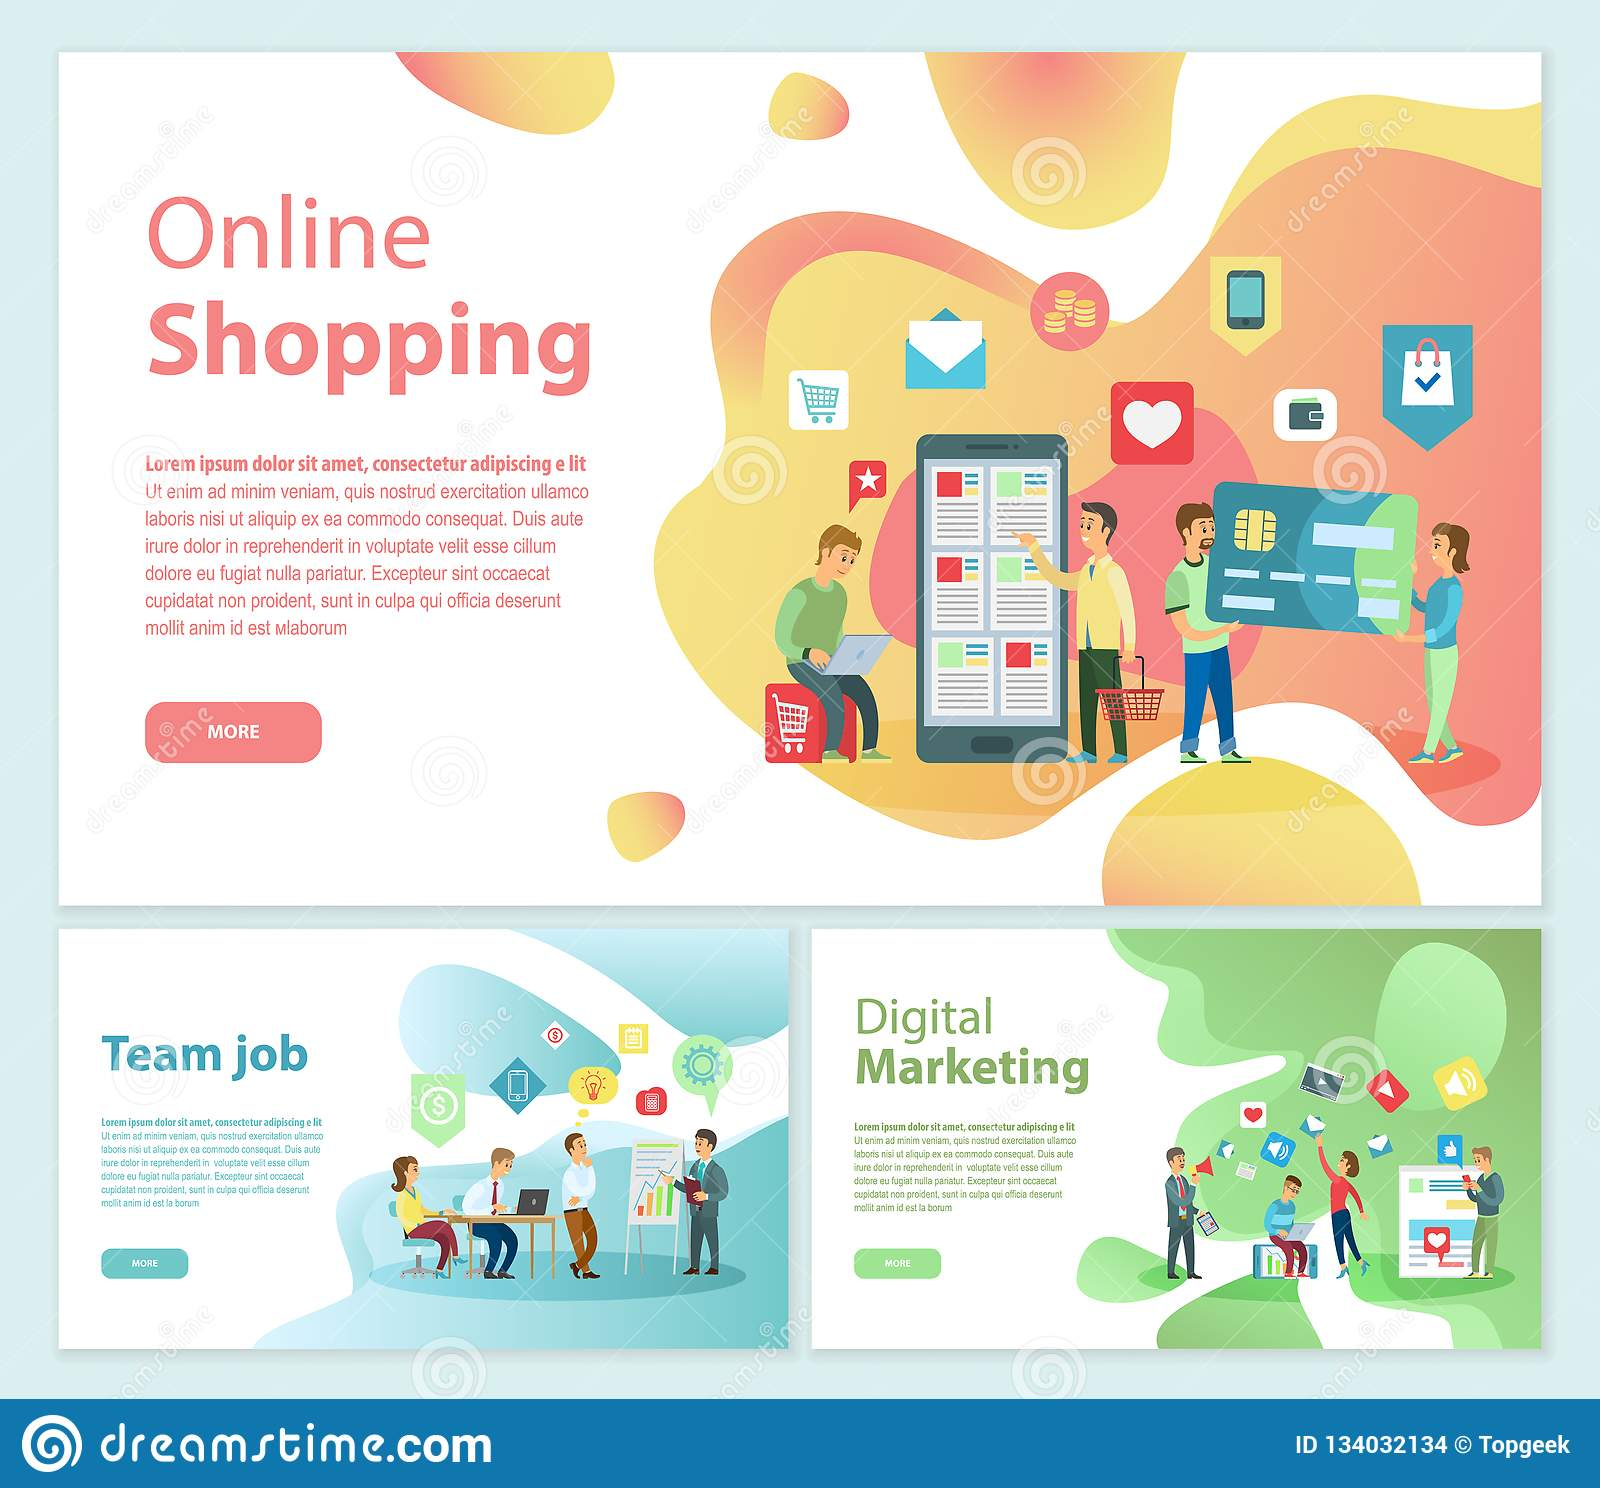 Online Shopping Team Job Posters Text Set Vector Stock Vector - Illustration of mobile, internet